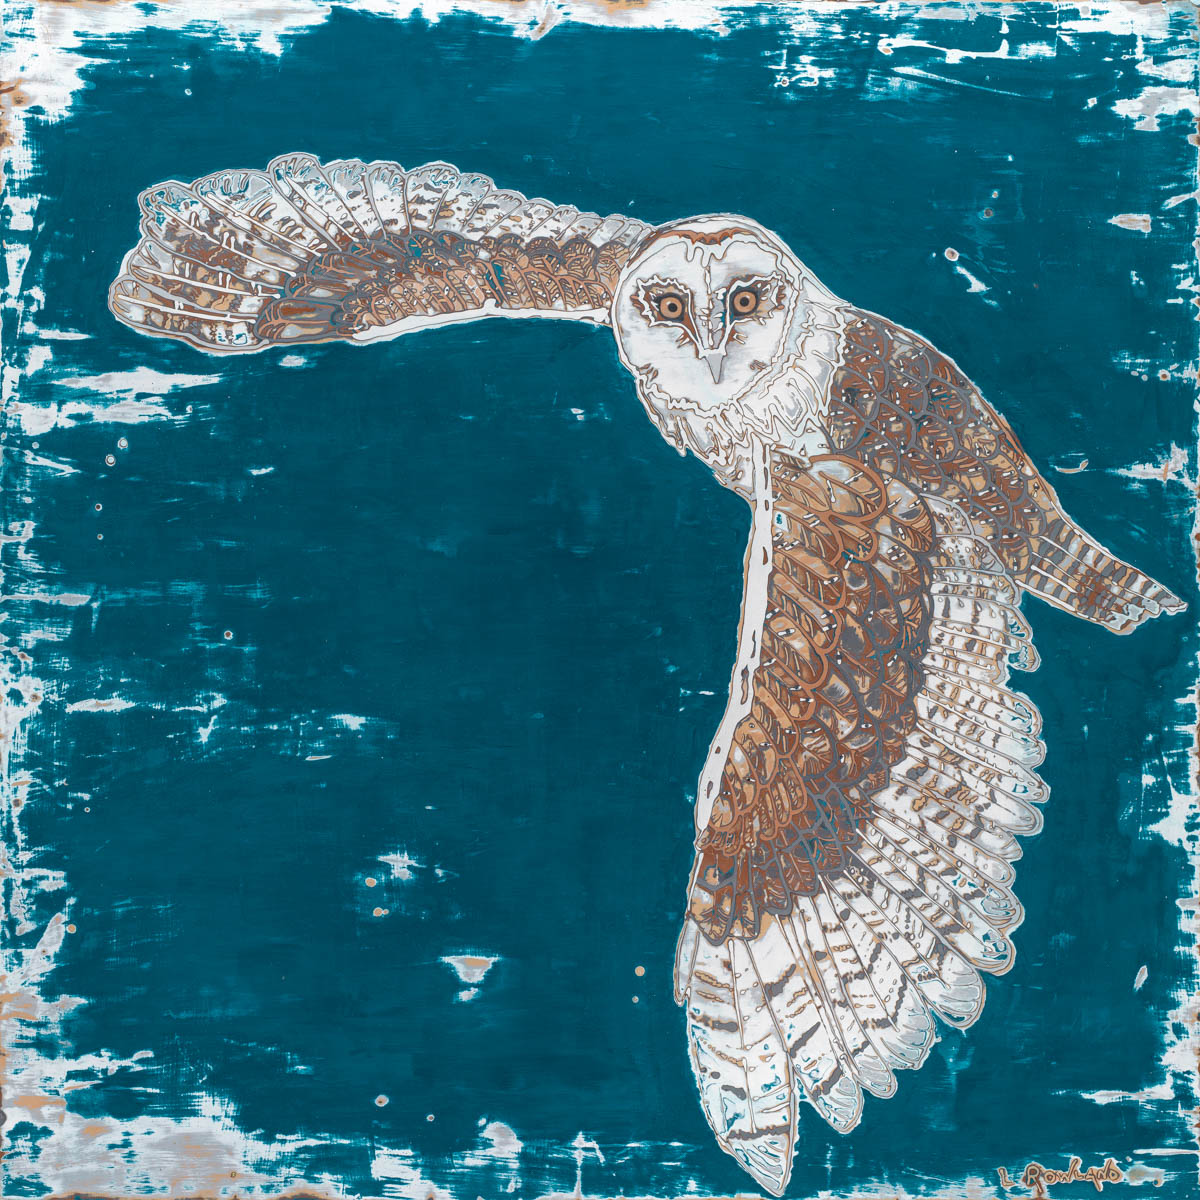 Leslie Rowland Explores Local Fauna in The Gifts They Bring